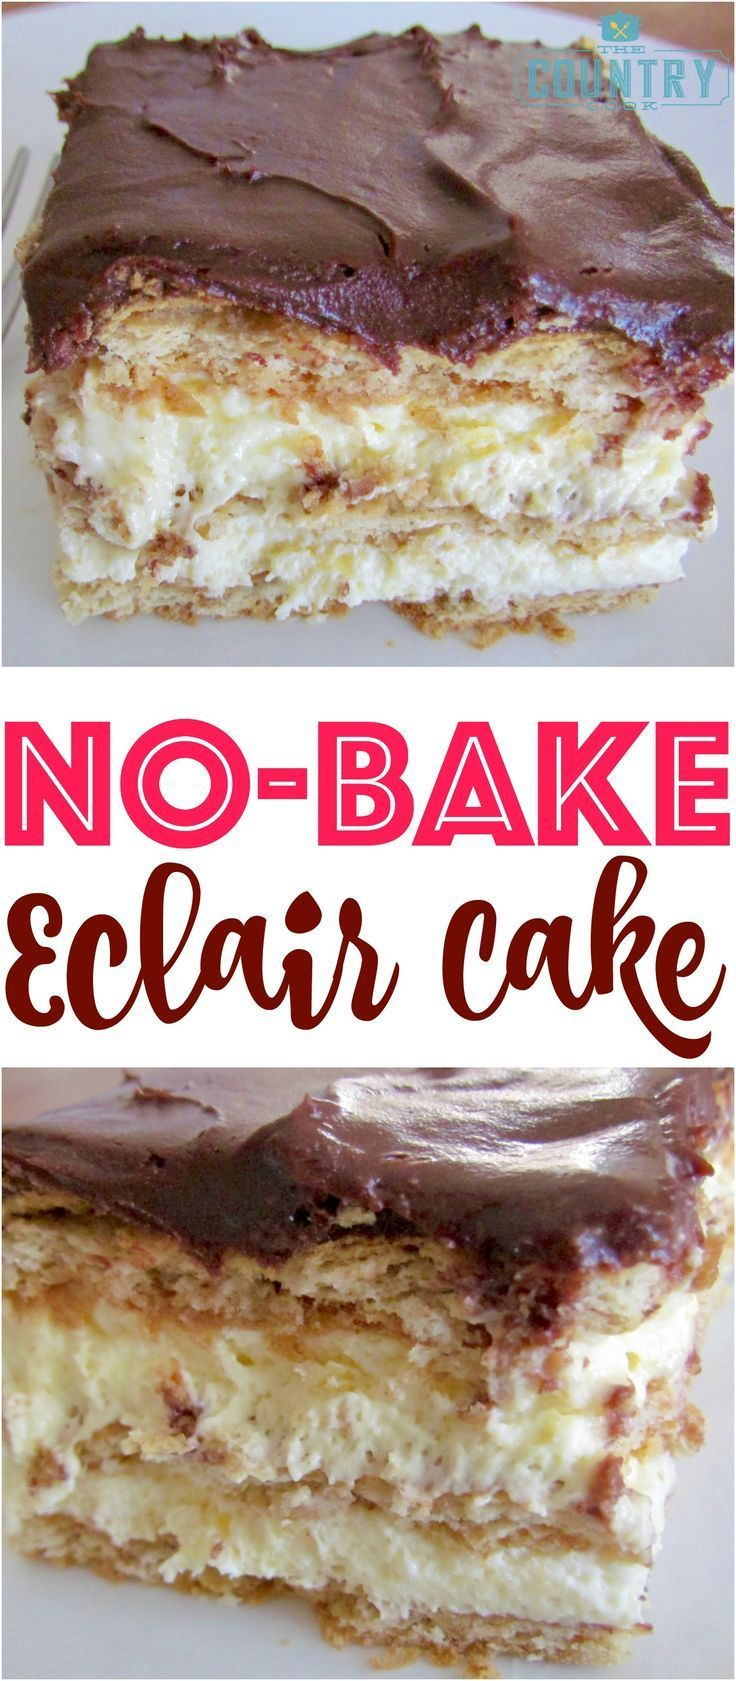 No-Bake Eclair Cake is a dessert that is so easy to make but the flavors come together and make the most impressive and yummy dessert ever!